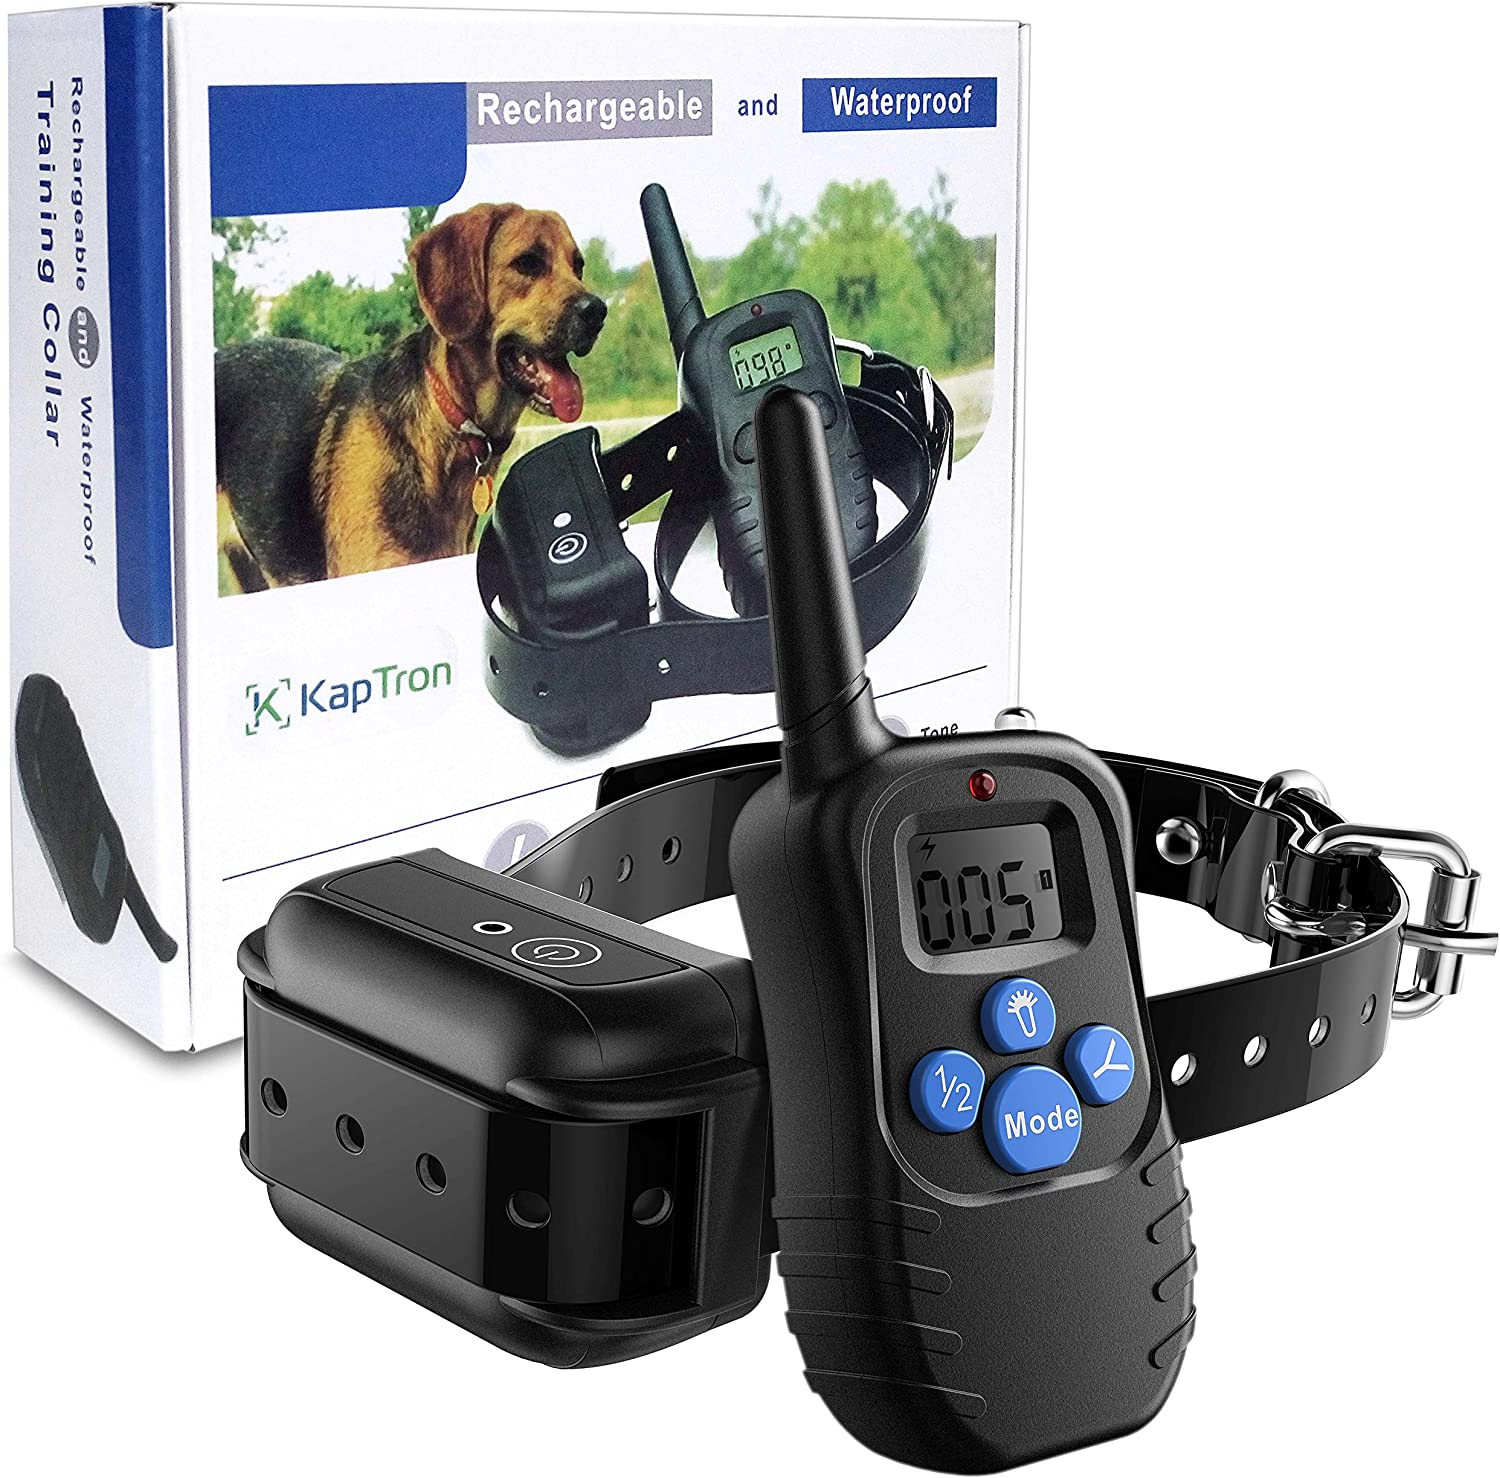 Kaptron Rechargeable Electric Dog Training Collar with Beep, Vibration and Electronic Shock Electric Collar